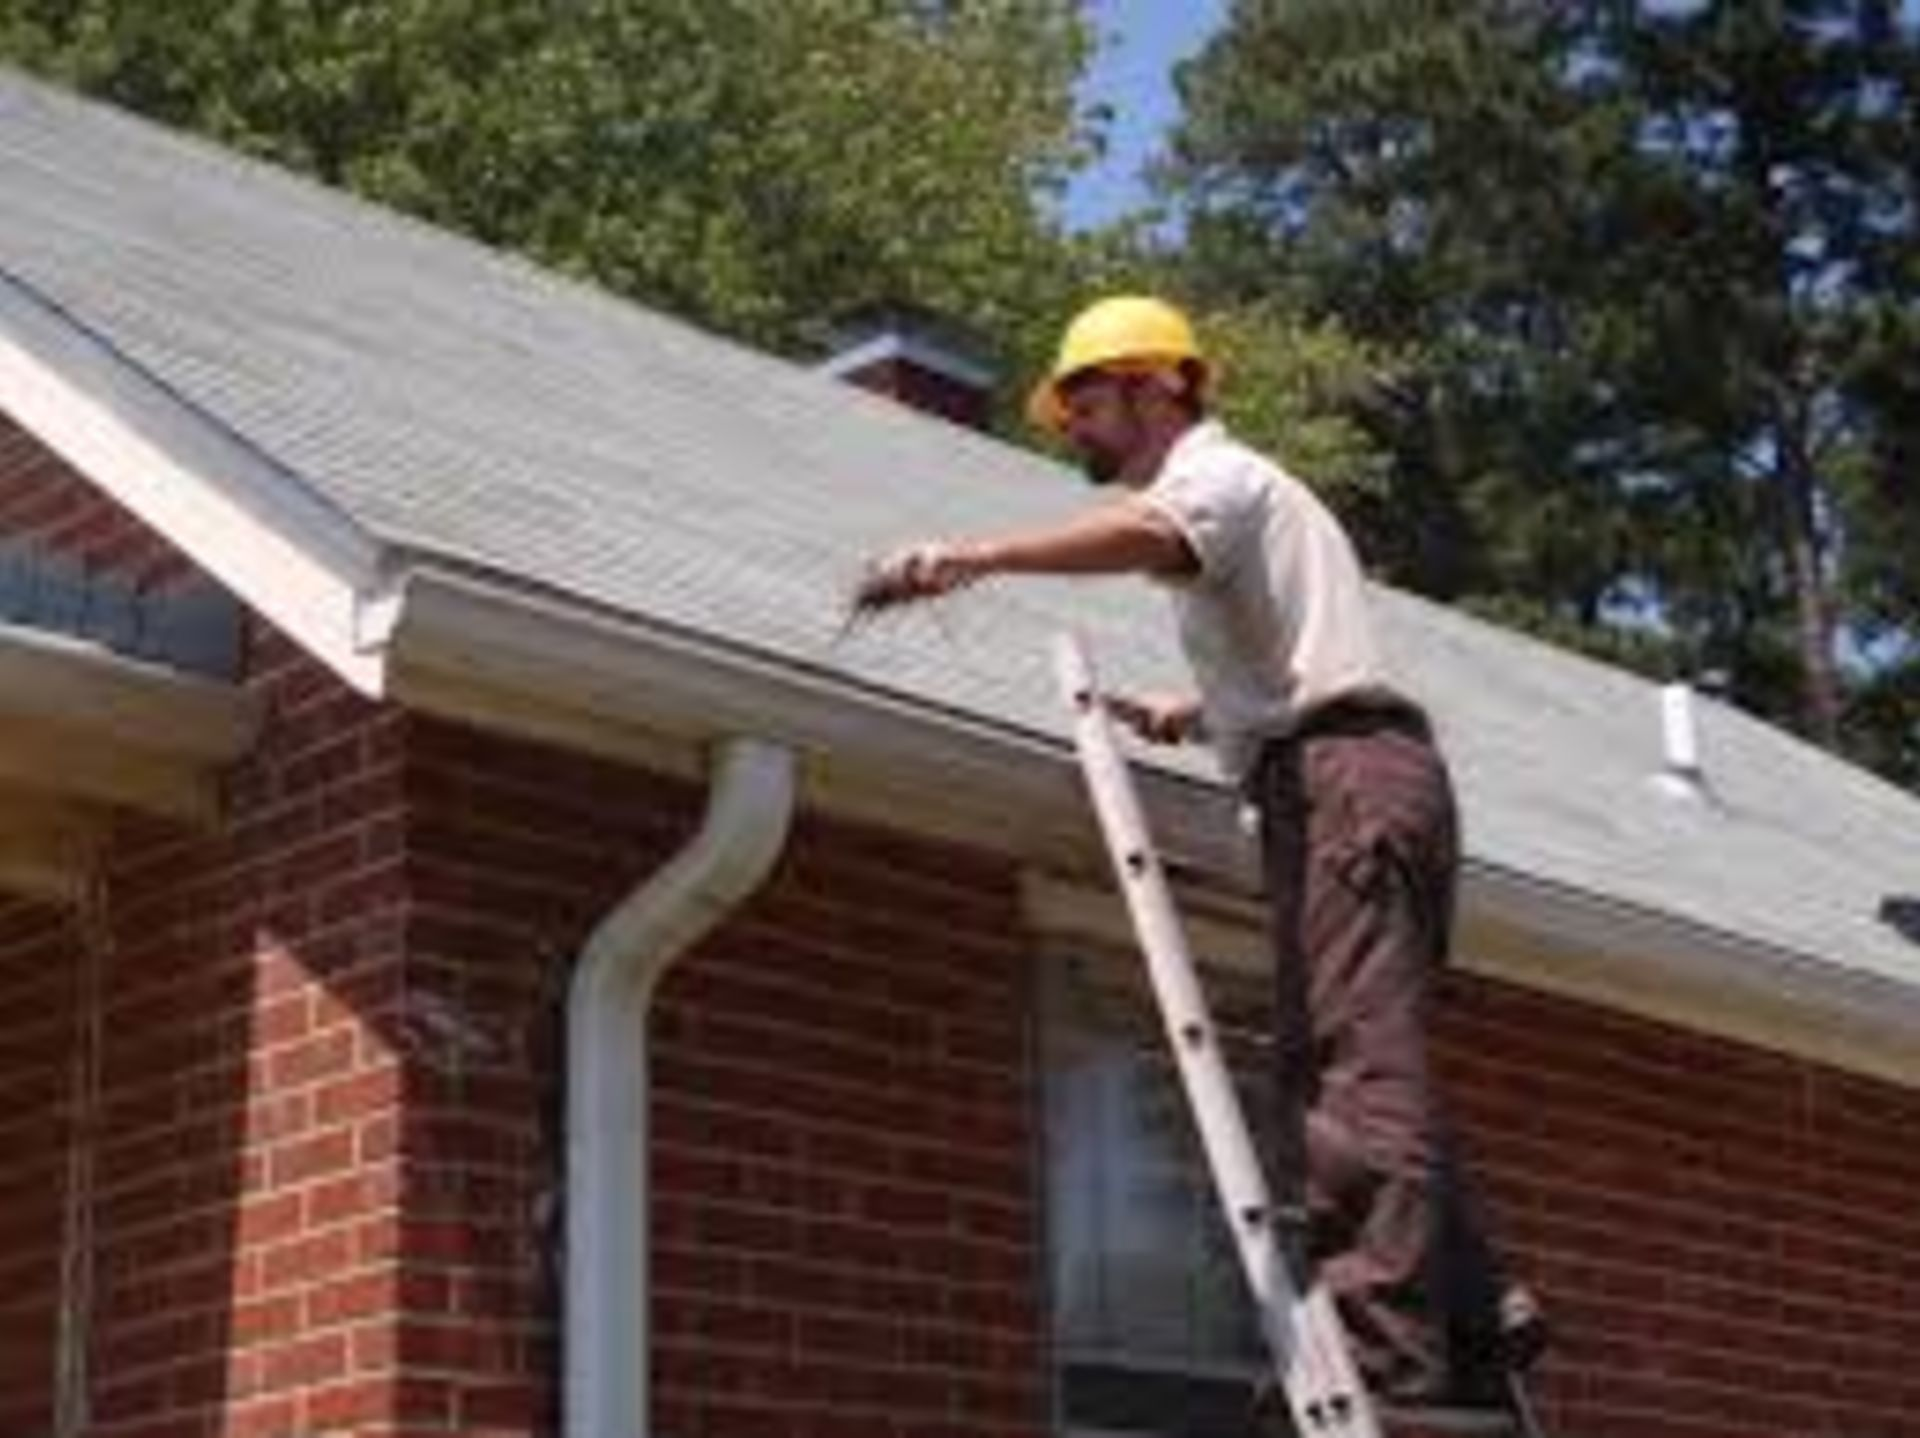 Tip of the Day: Schedule to Clean Out Your Rain Gutters